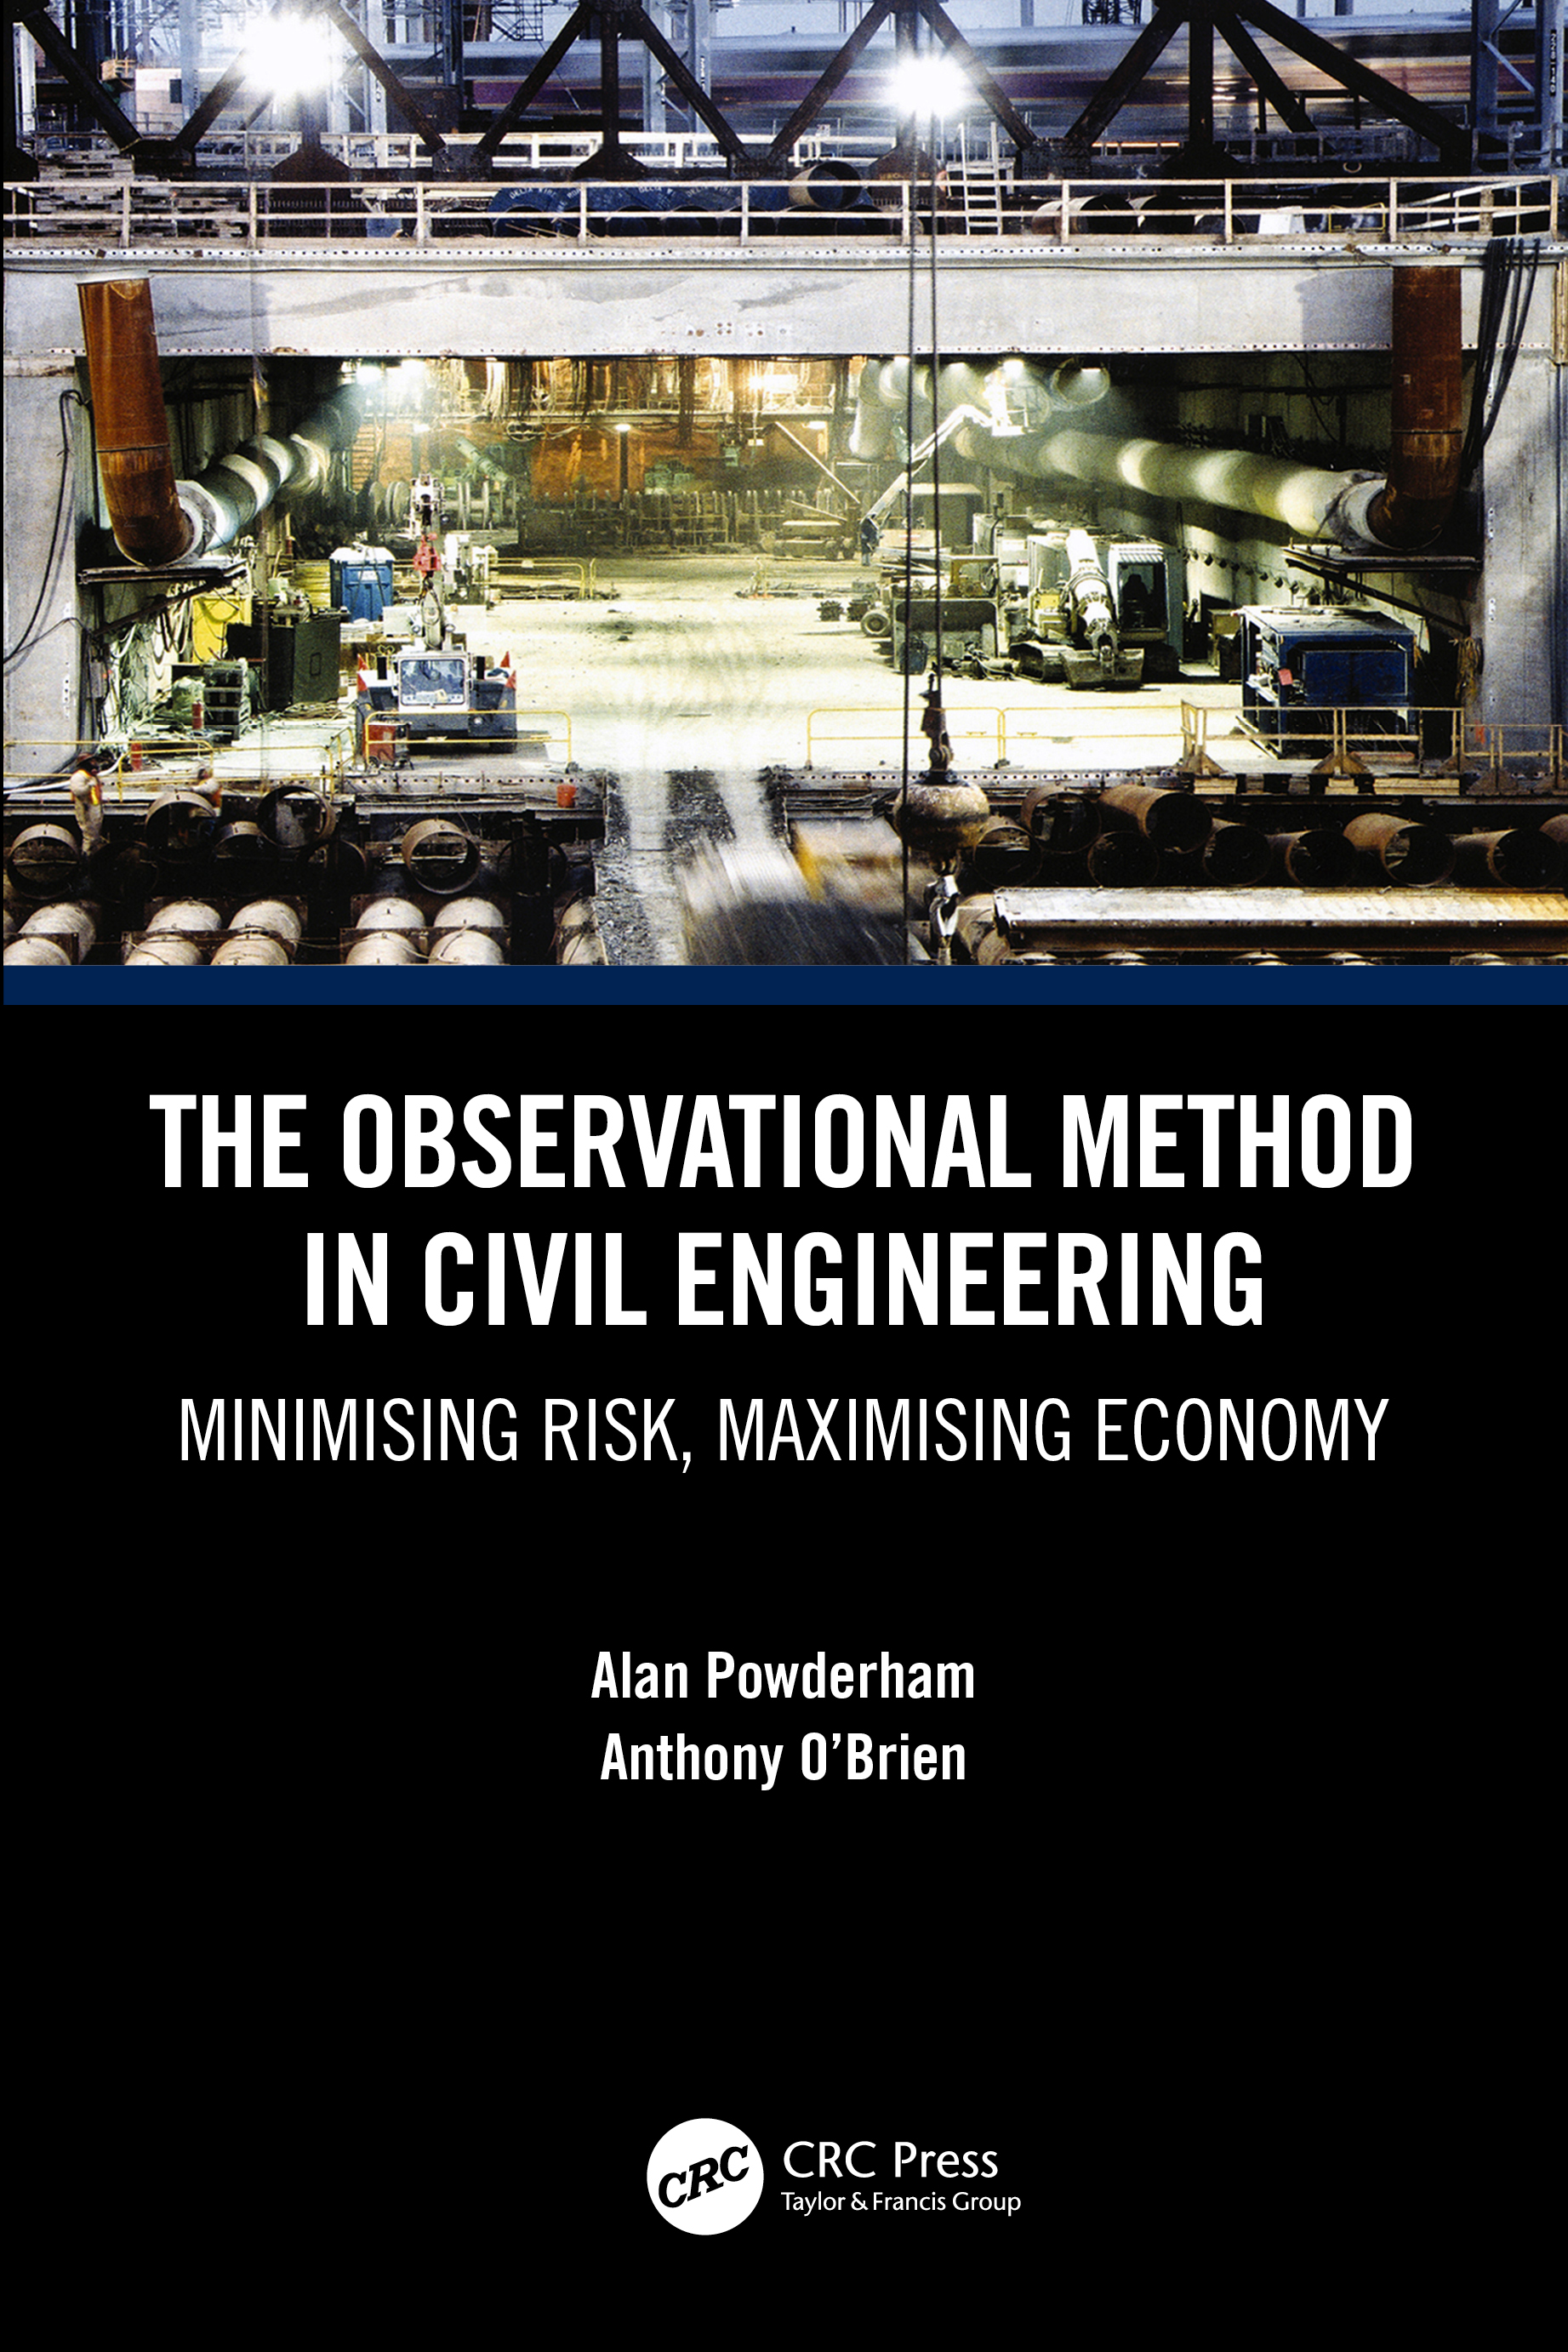 The Observational Method in Civil Engineering